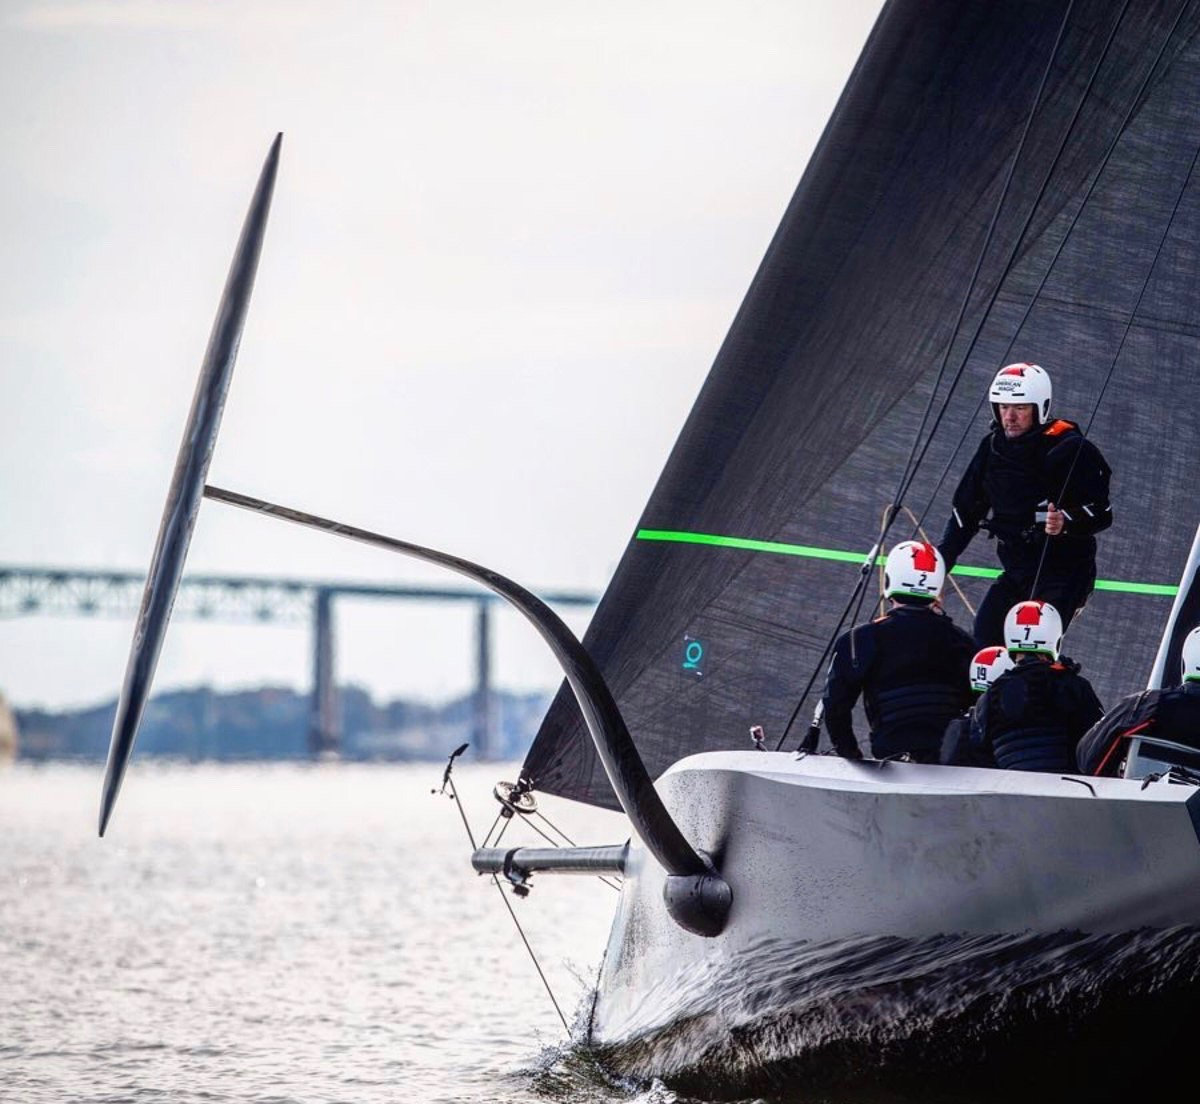 American Magic launches America's Cup test boat